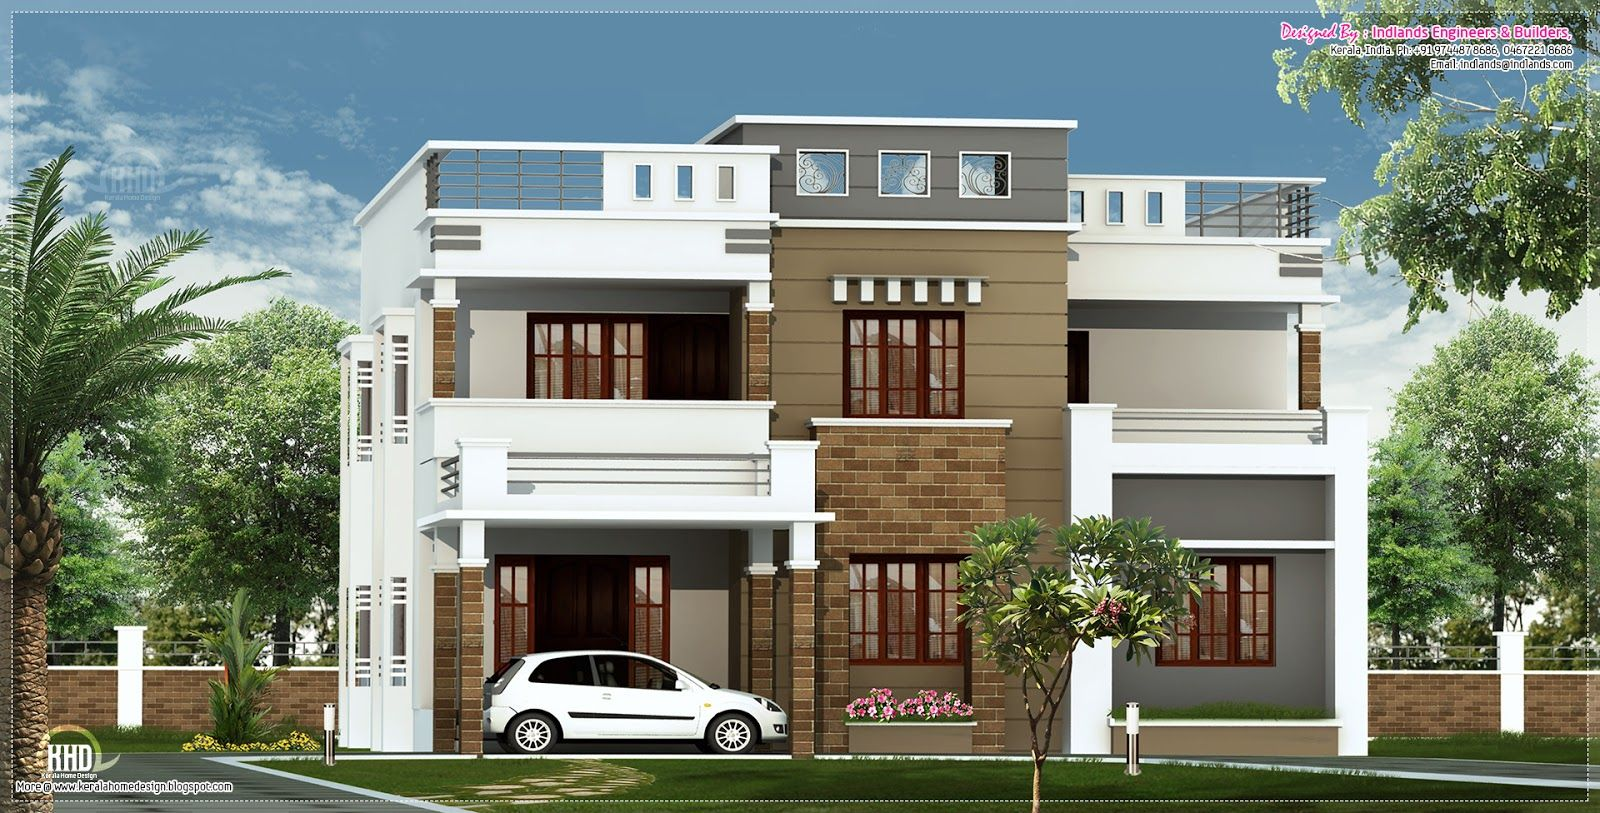 4 bedroom house with roof terrace plans google search New construction home plans